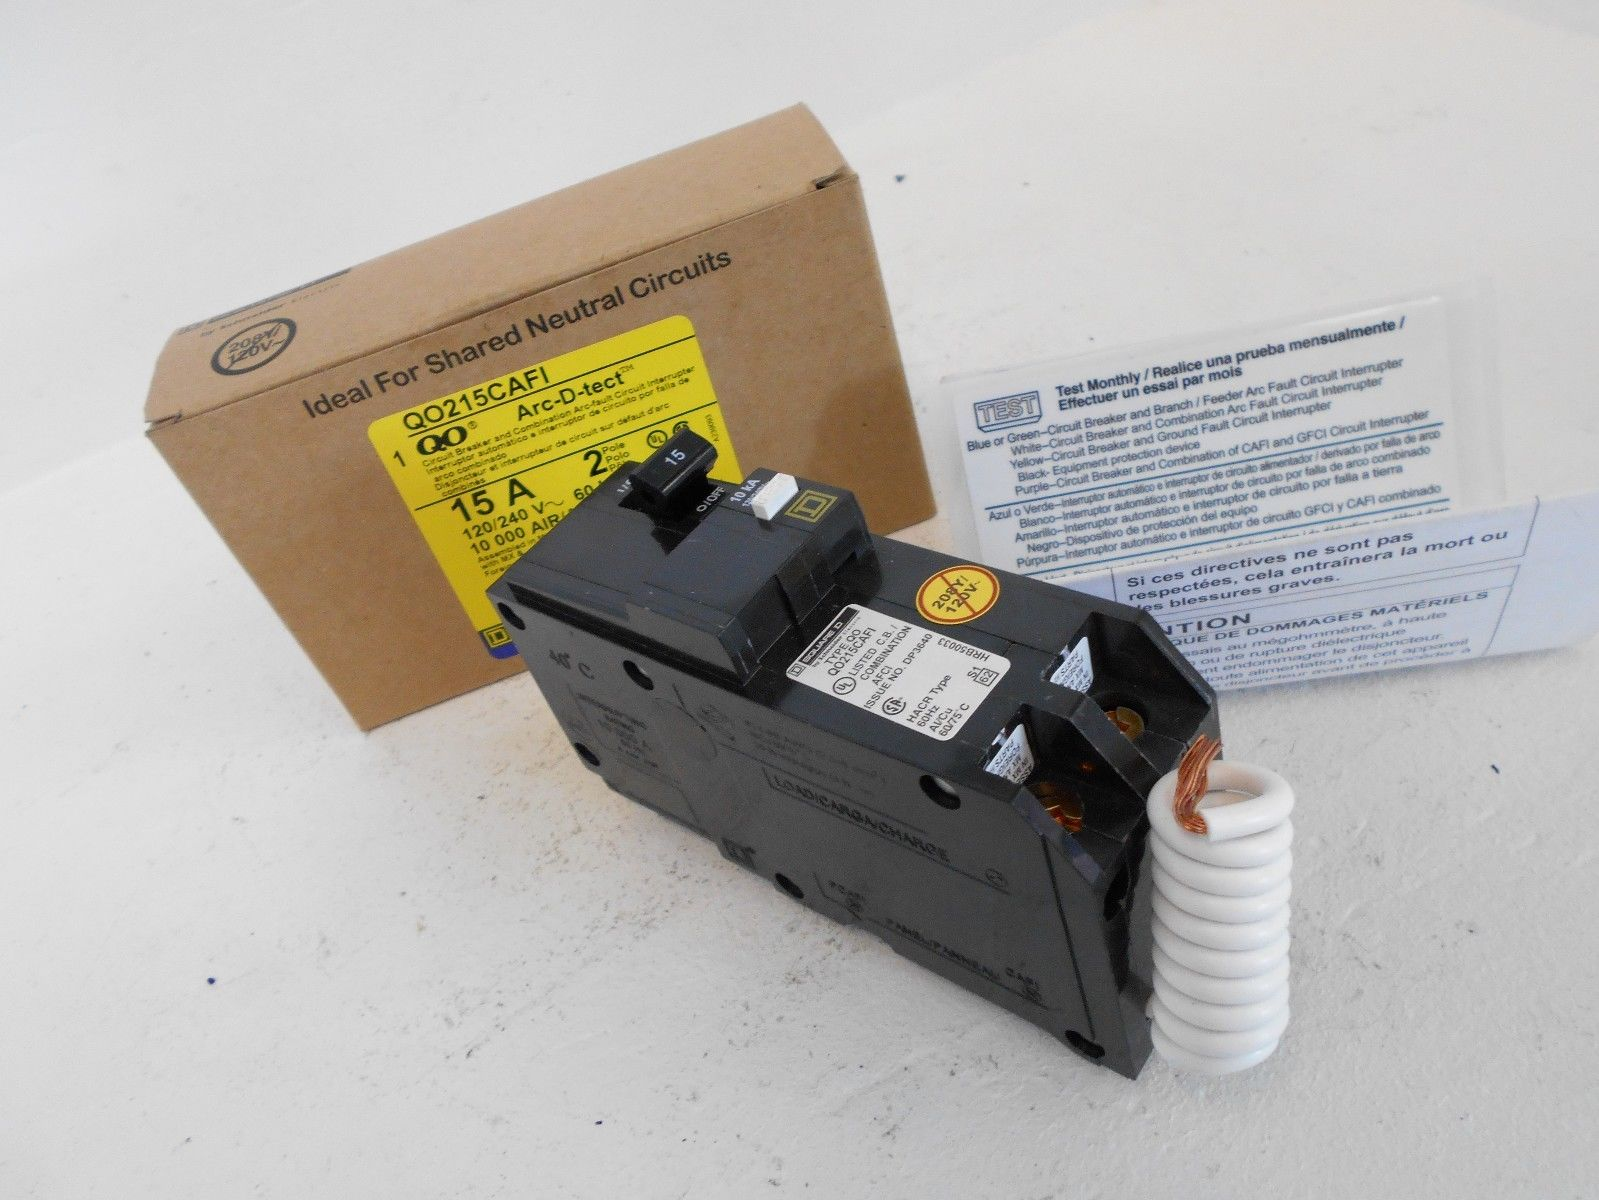 New Square D Qo215cafi 2 Pole 15 Amp 120 240v Combination Arc Fault Afci Breaker Box Including Ge Circuit Breakers 15a